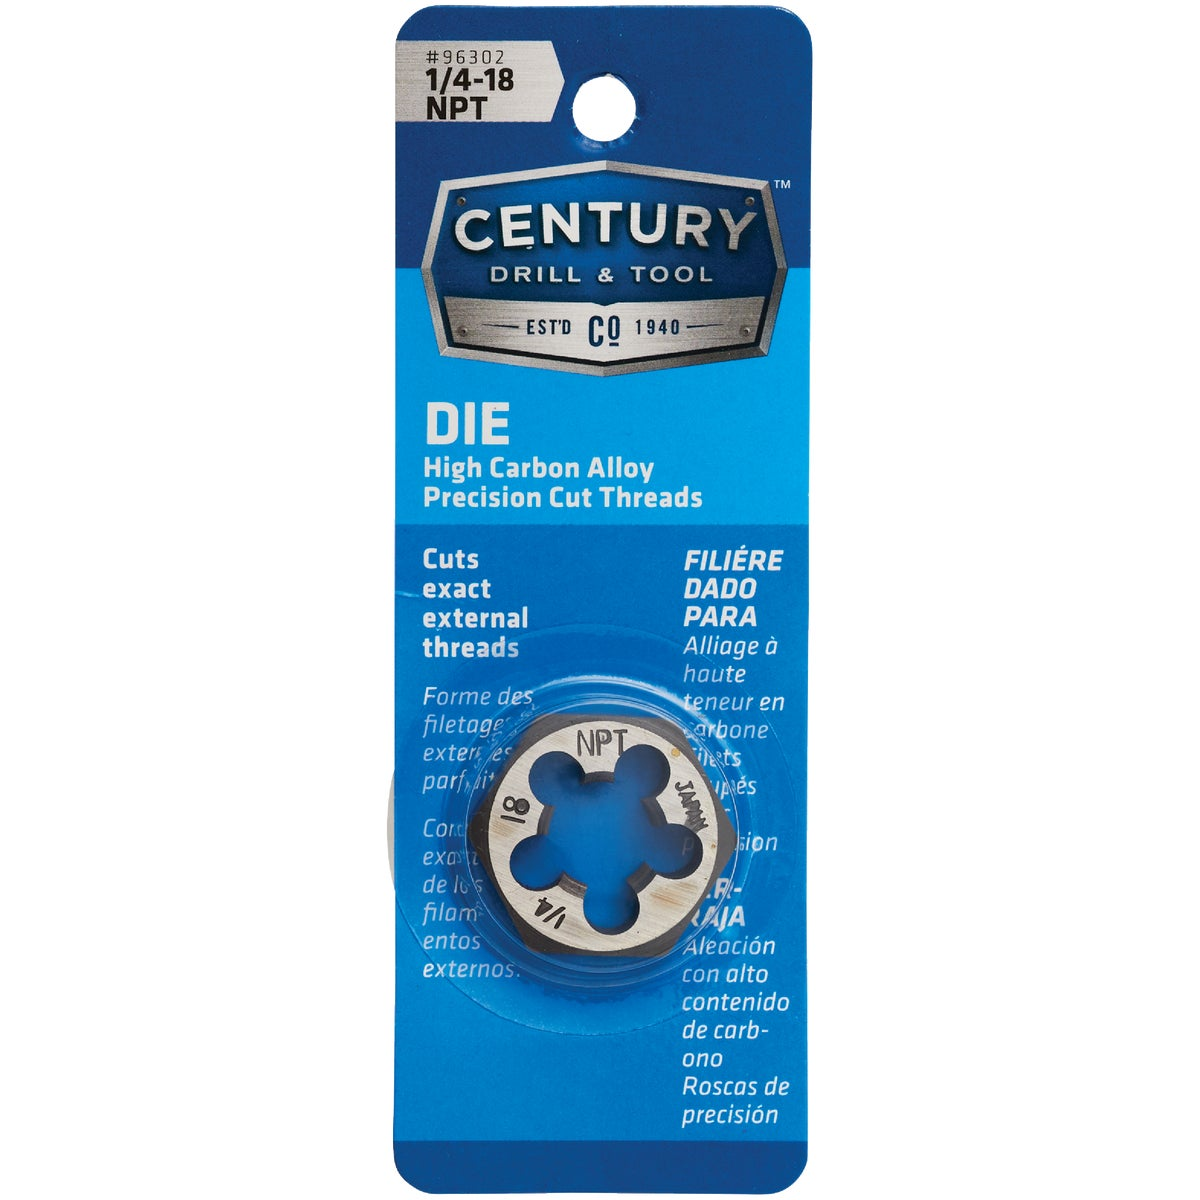 1/4X18 NPT HEX DIE - 9503ZR by Irwin Industr Tool